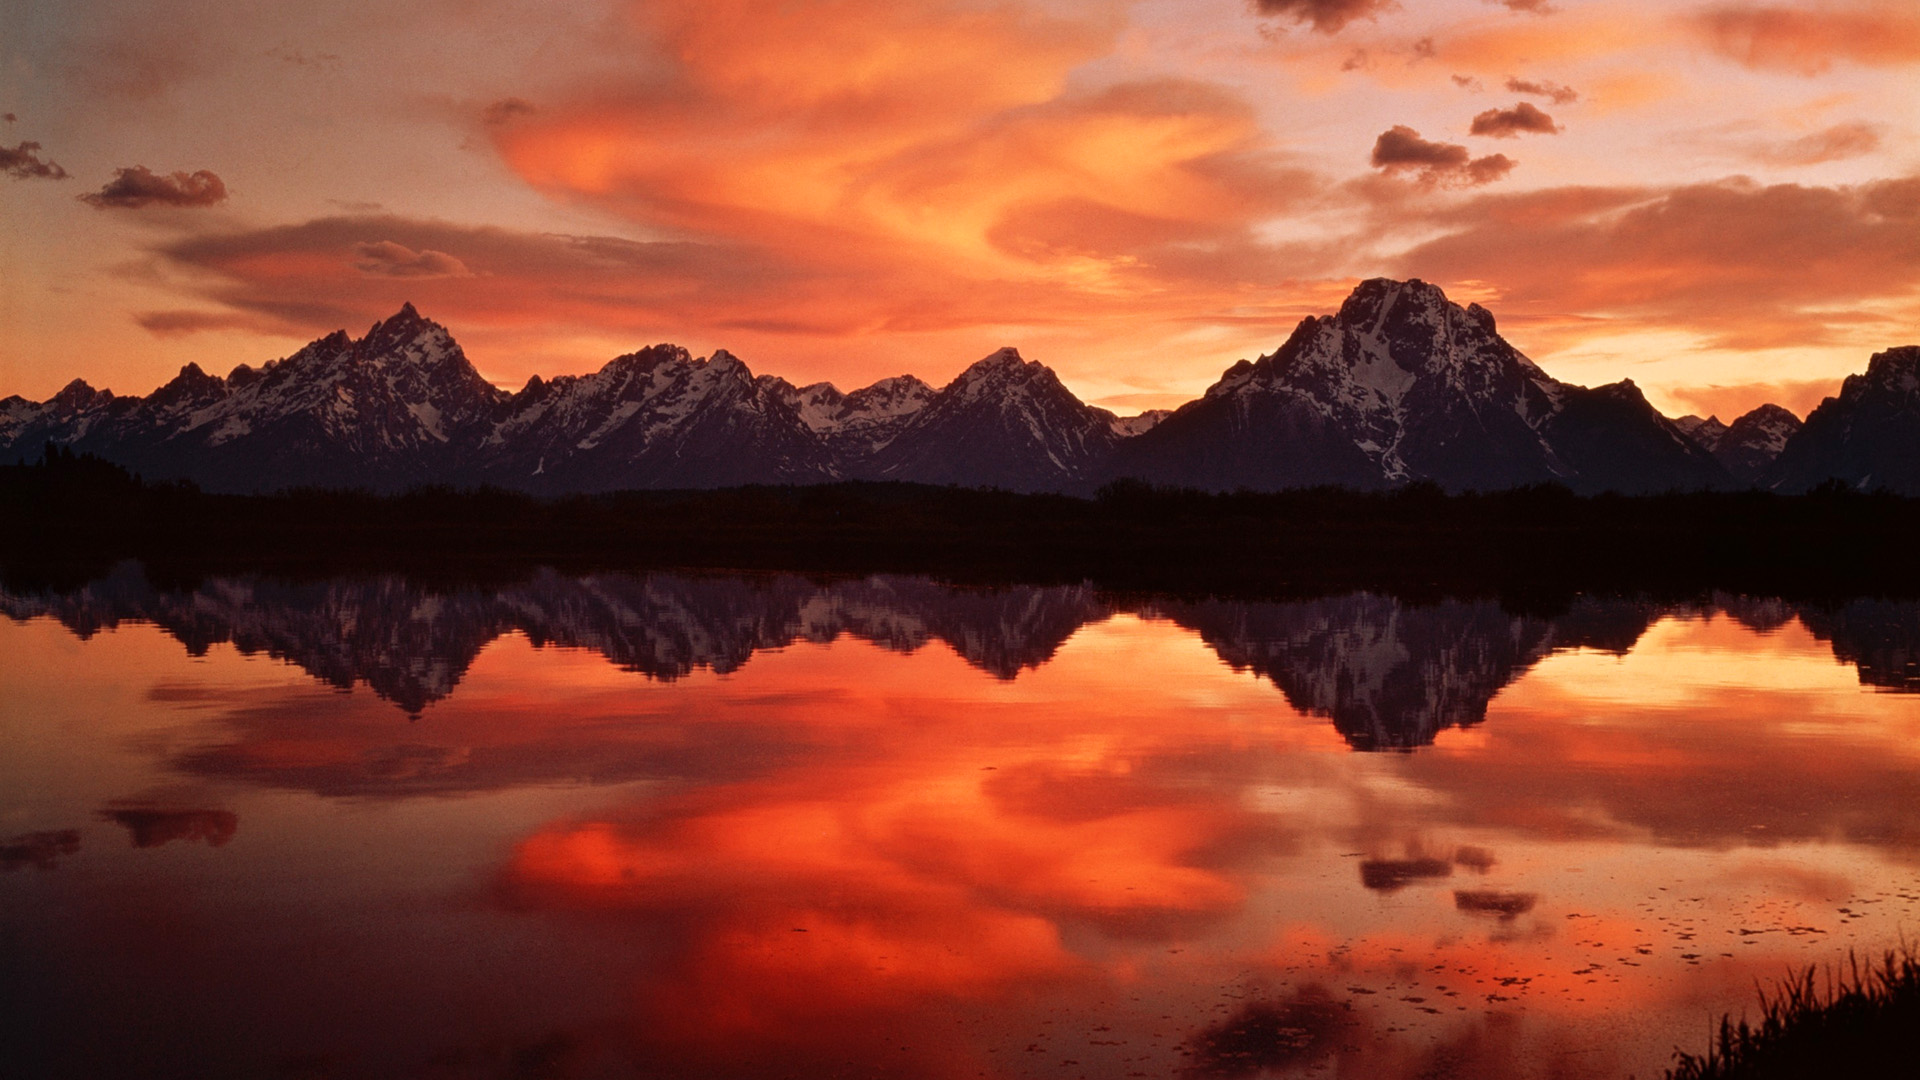 sunset in the mountains wallpapers high quality download